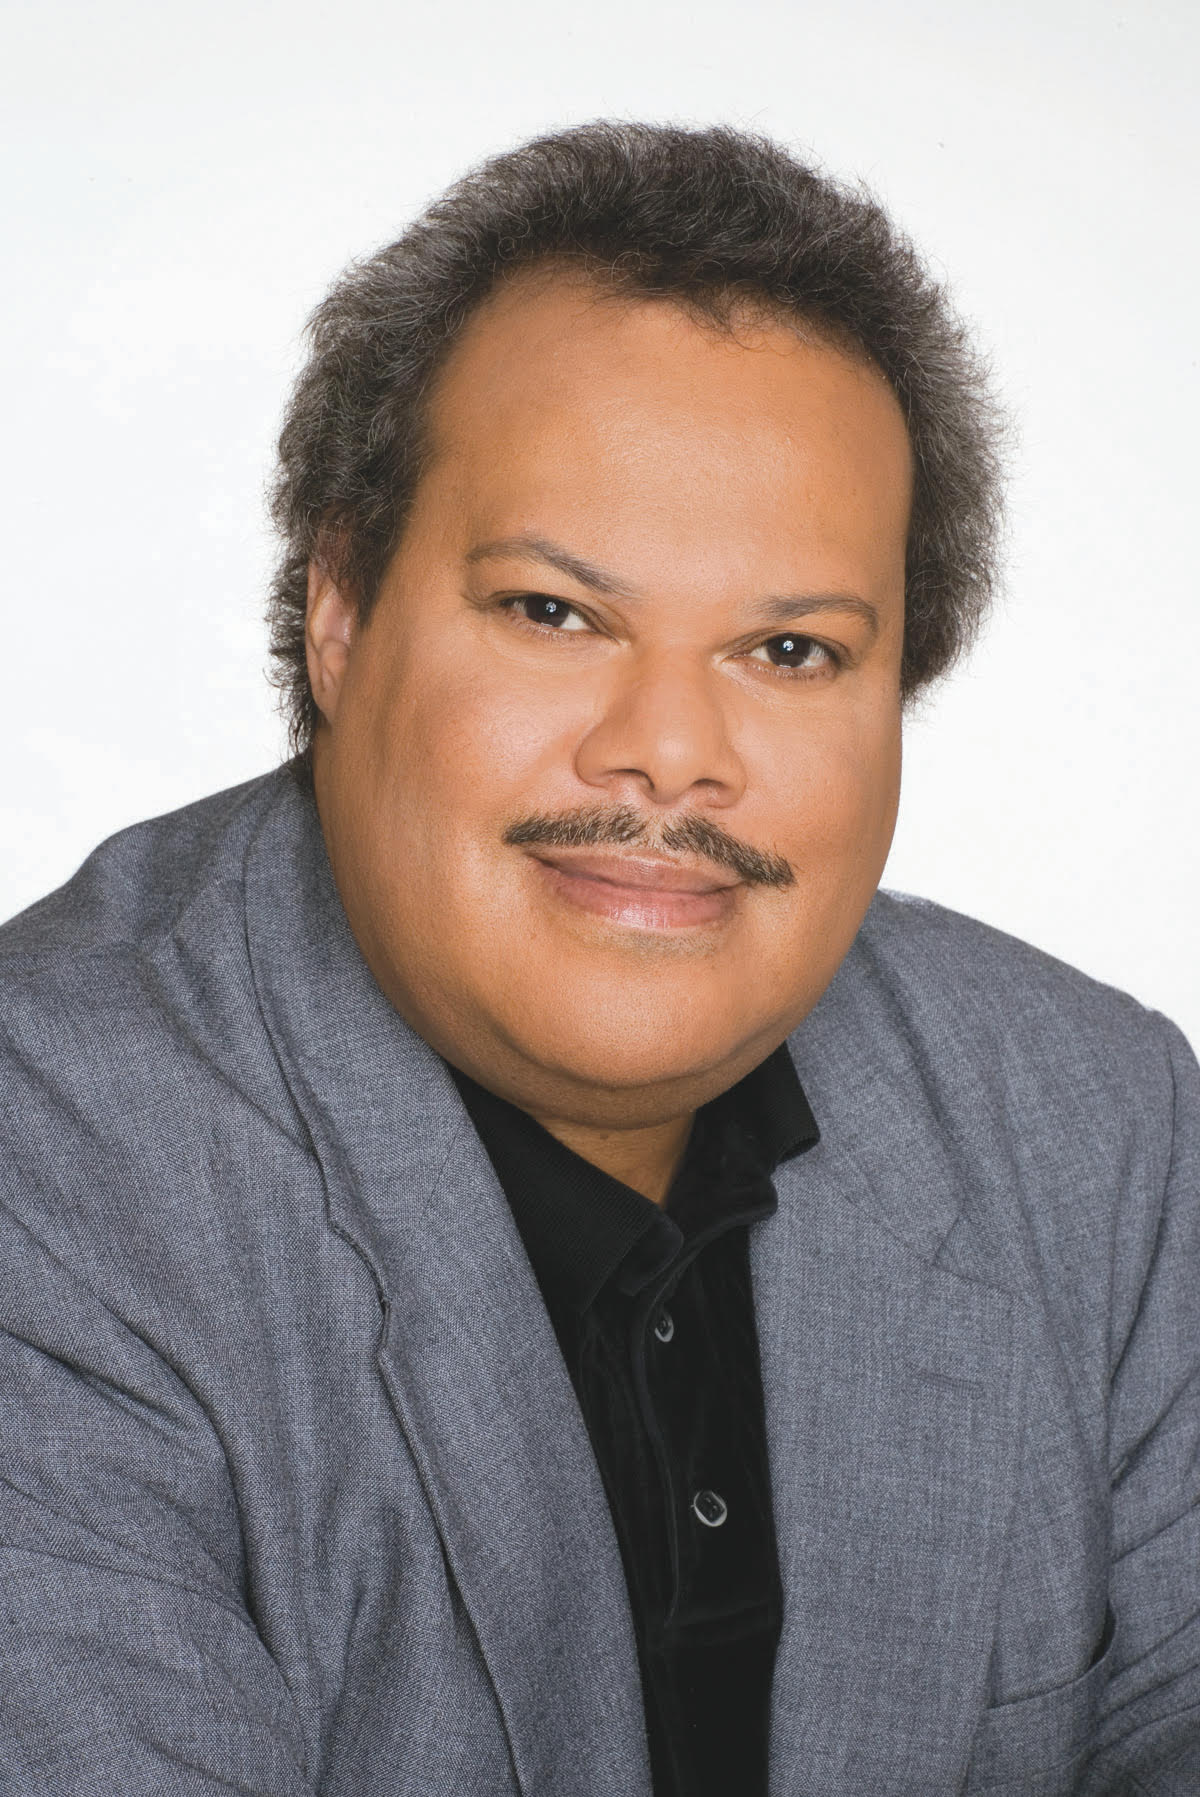 Chicago journalist David Smallwood, who co-authored and edited several books on Black historic icons, and whose prolific career spanned the pioneering journalist Lu Palmer's newspaper, to N'digo magapaper, where he was the editor for more than 30 years, died June 11 from complications of cancer and COVID-19.